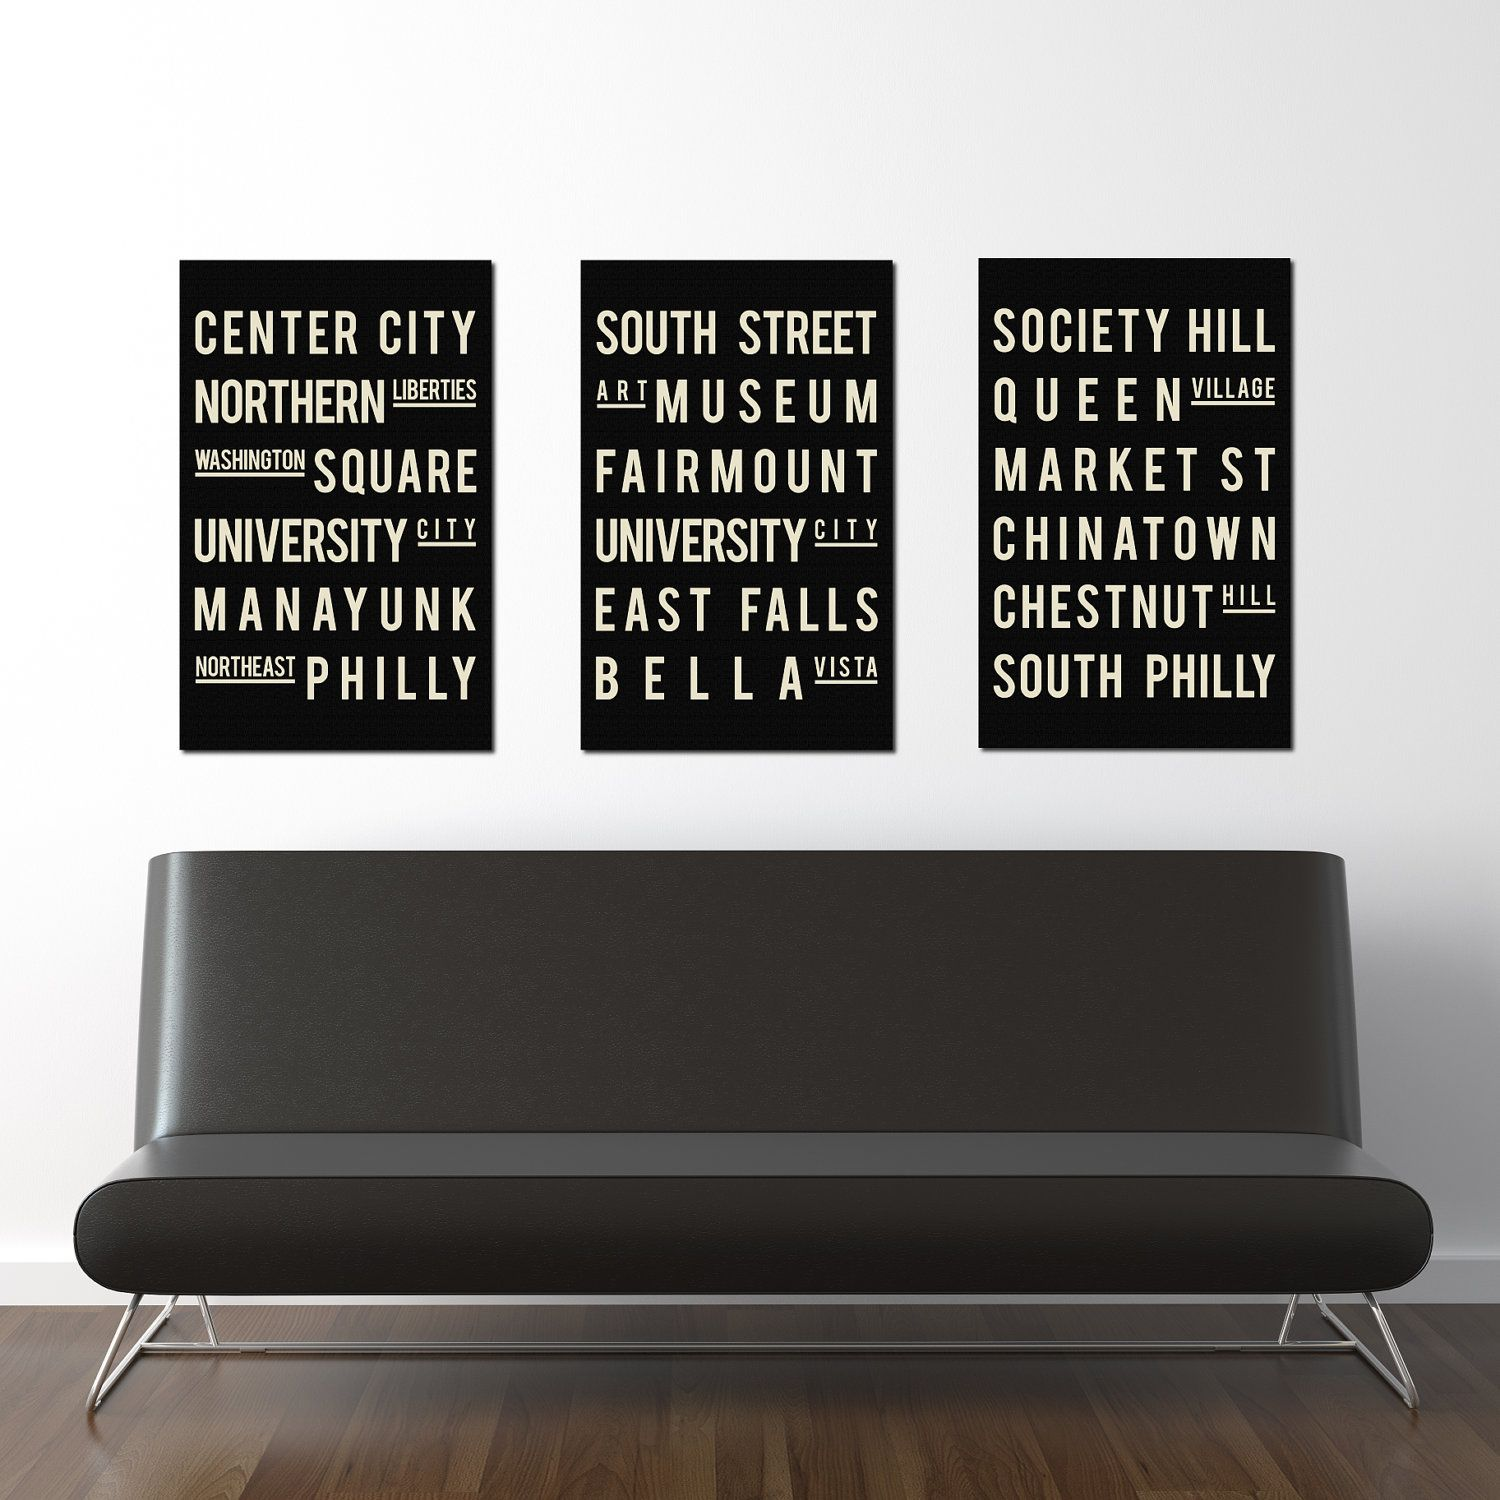 Philadelphia Subway Art Typography Print City Poster Modern Home Decor Gift